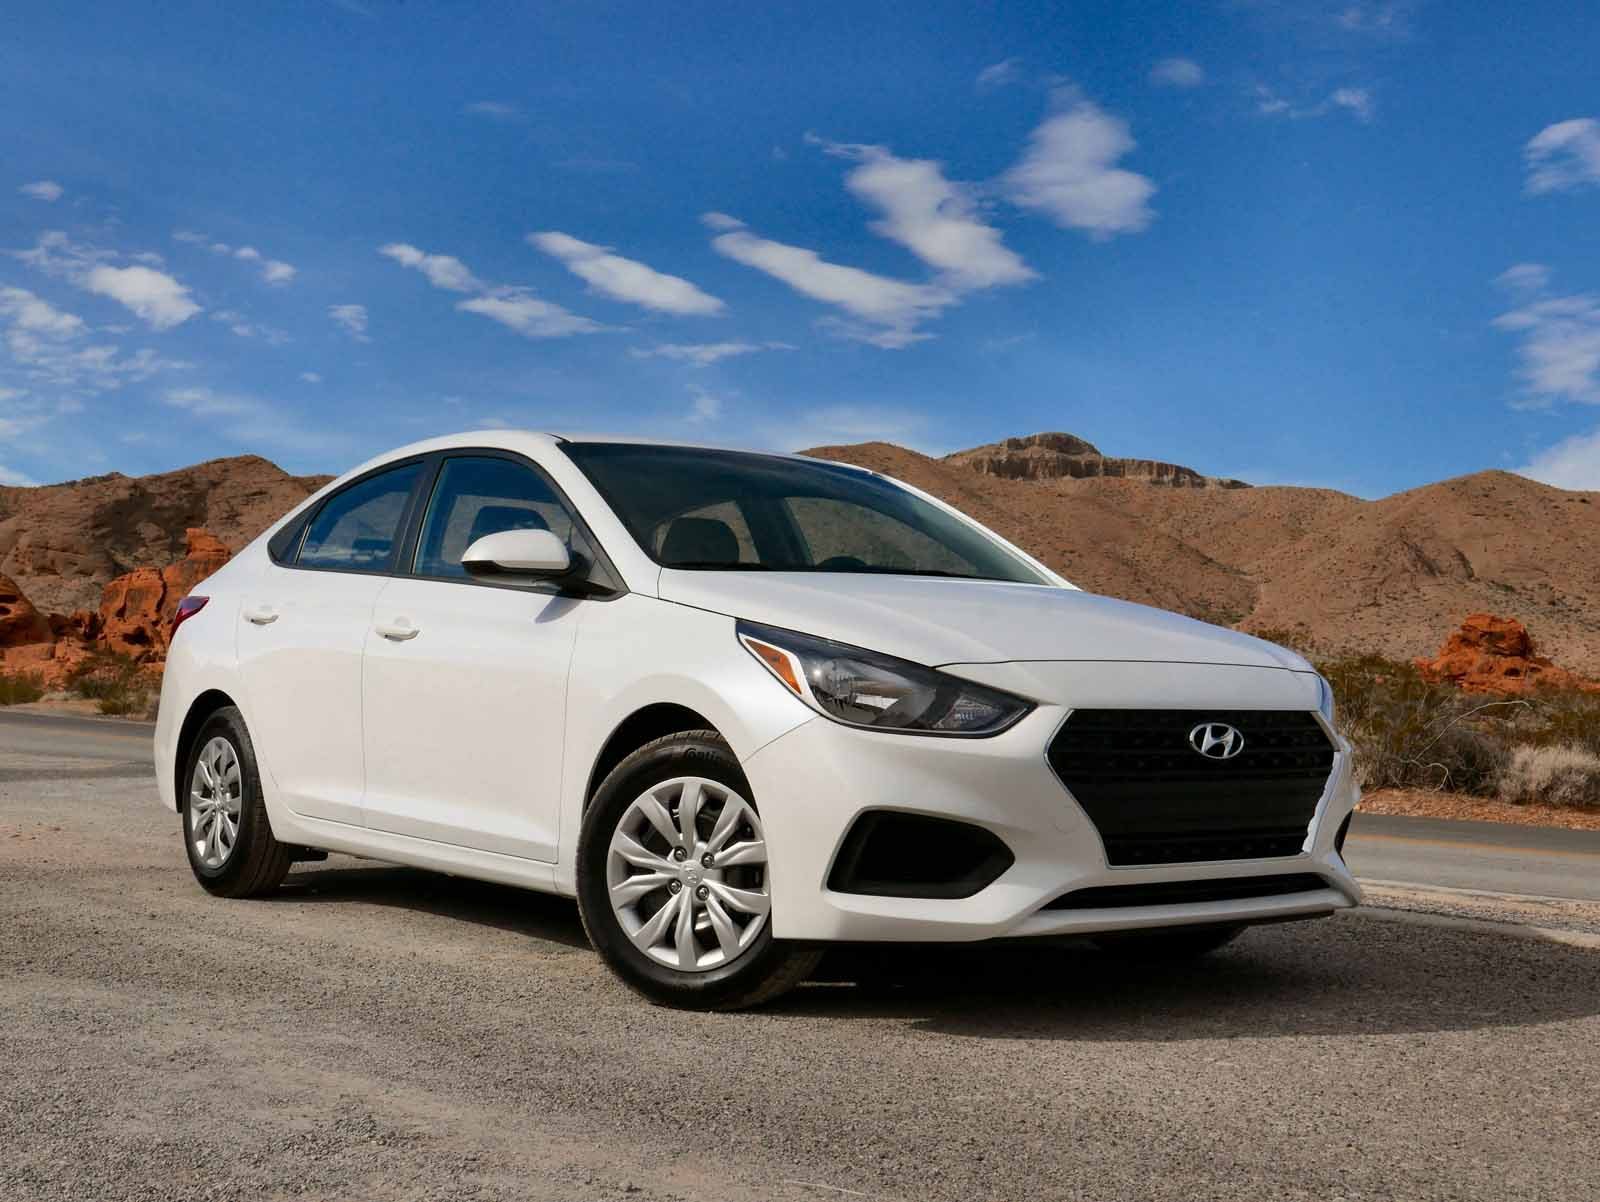 2018 Hyundai Accent Review and First Drive - AutoGuide.com